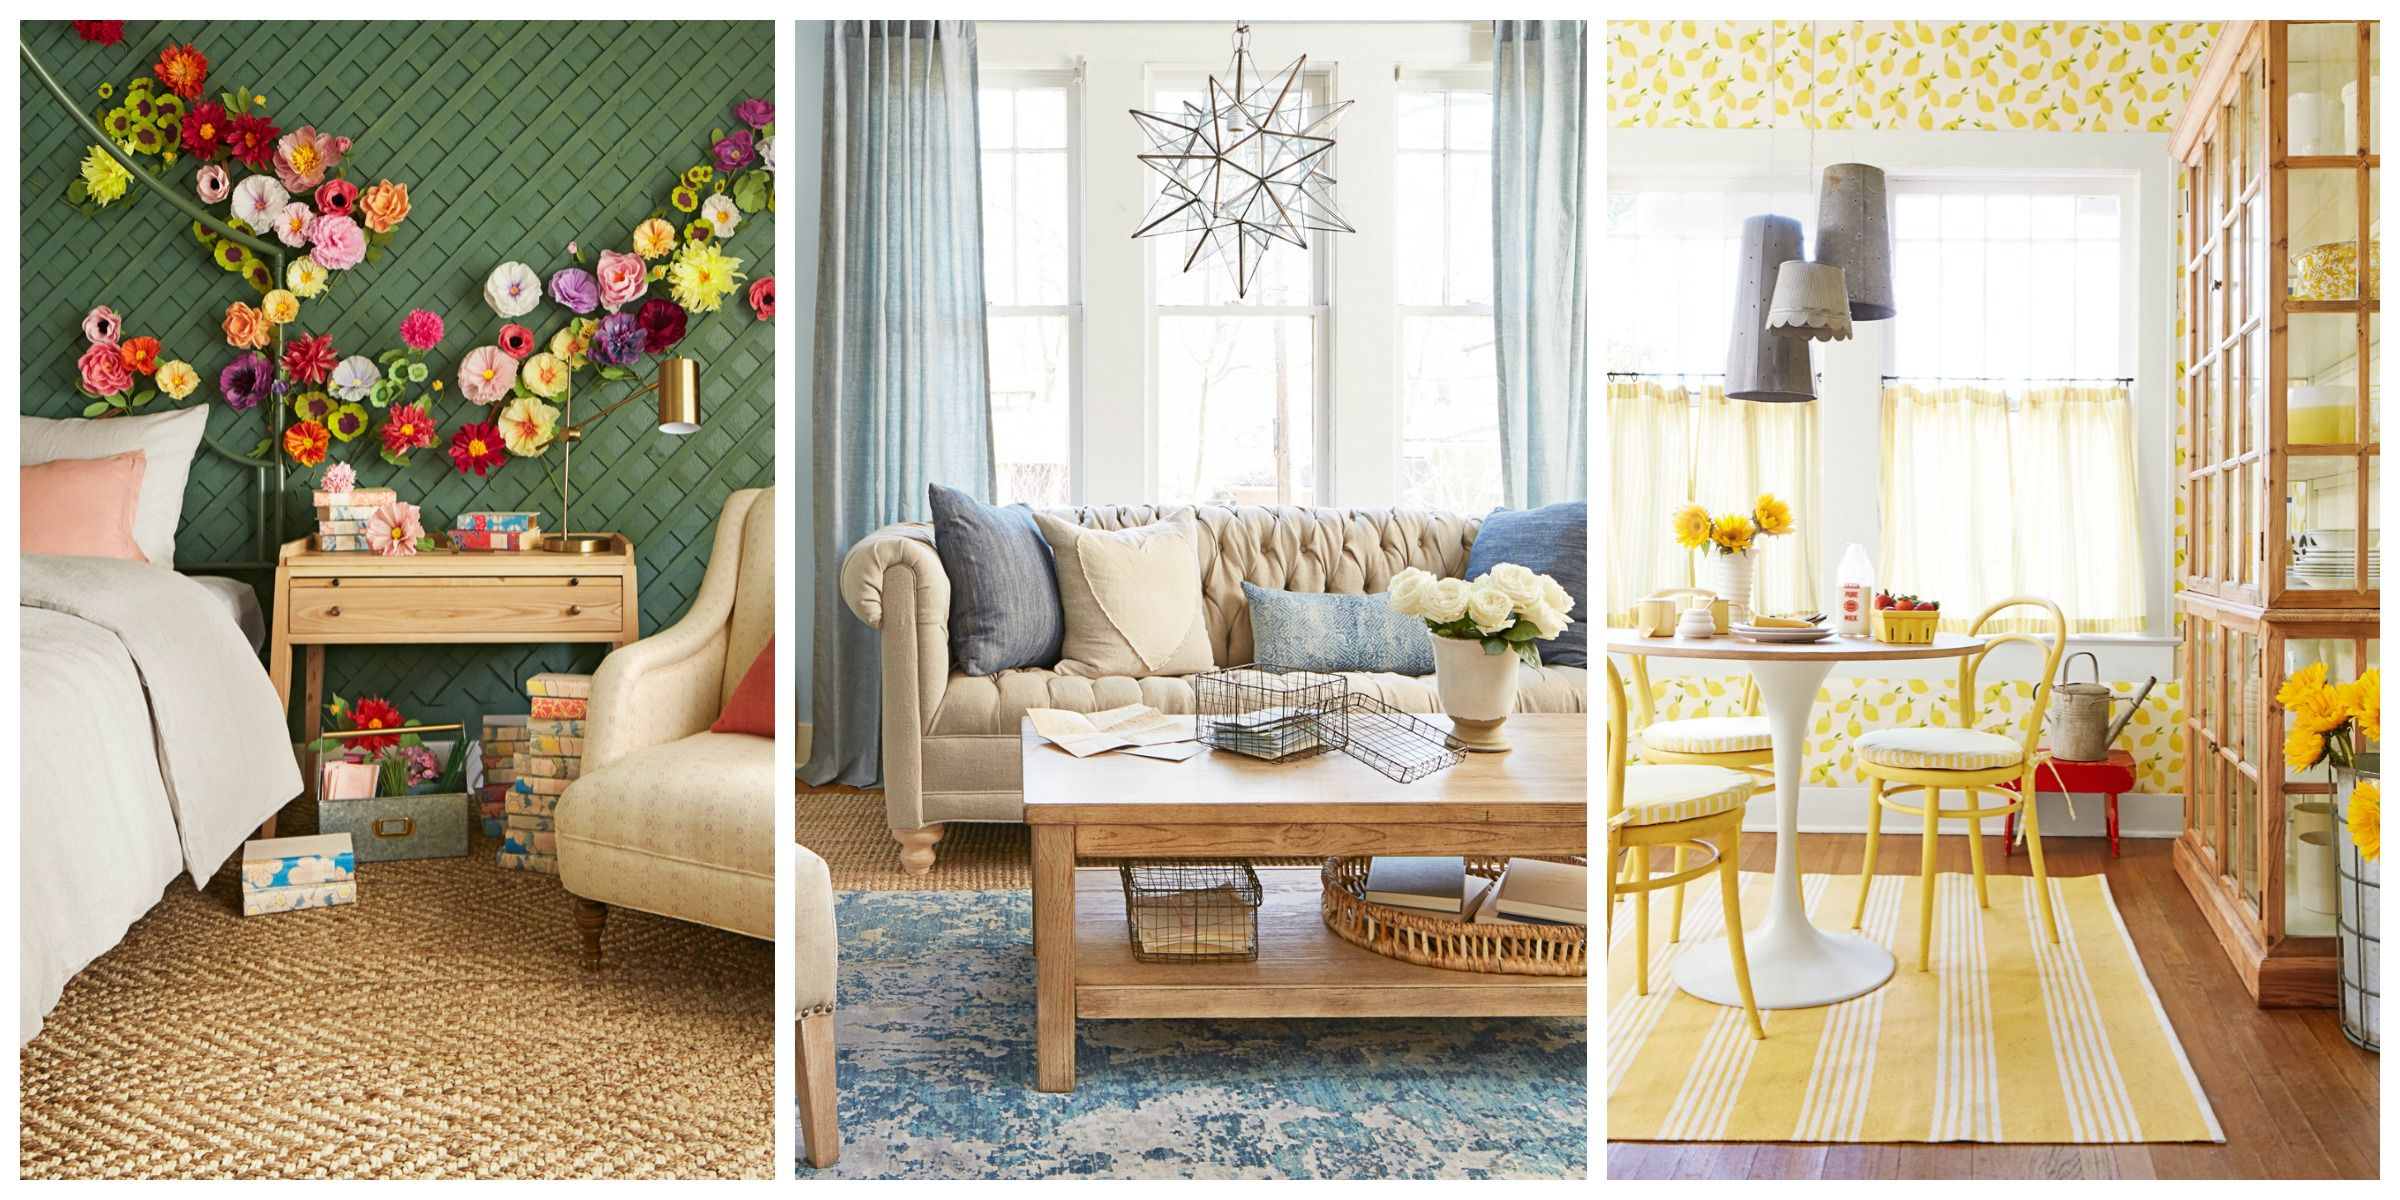 14 Design Ideas Inspired by Classic